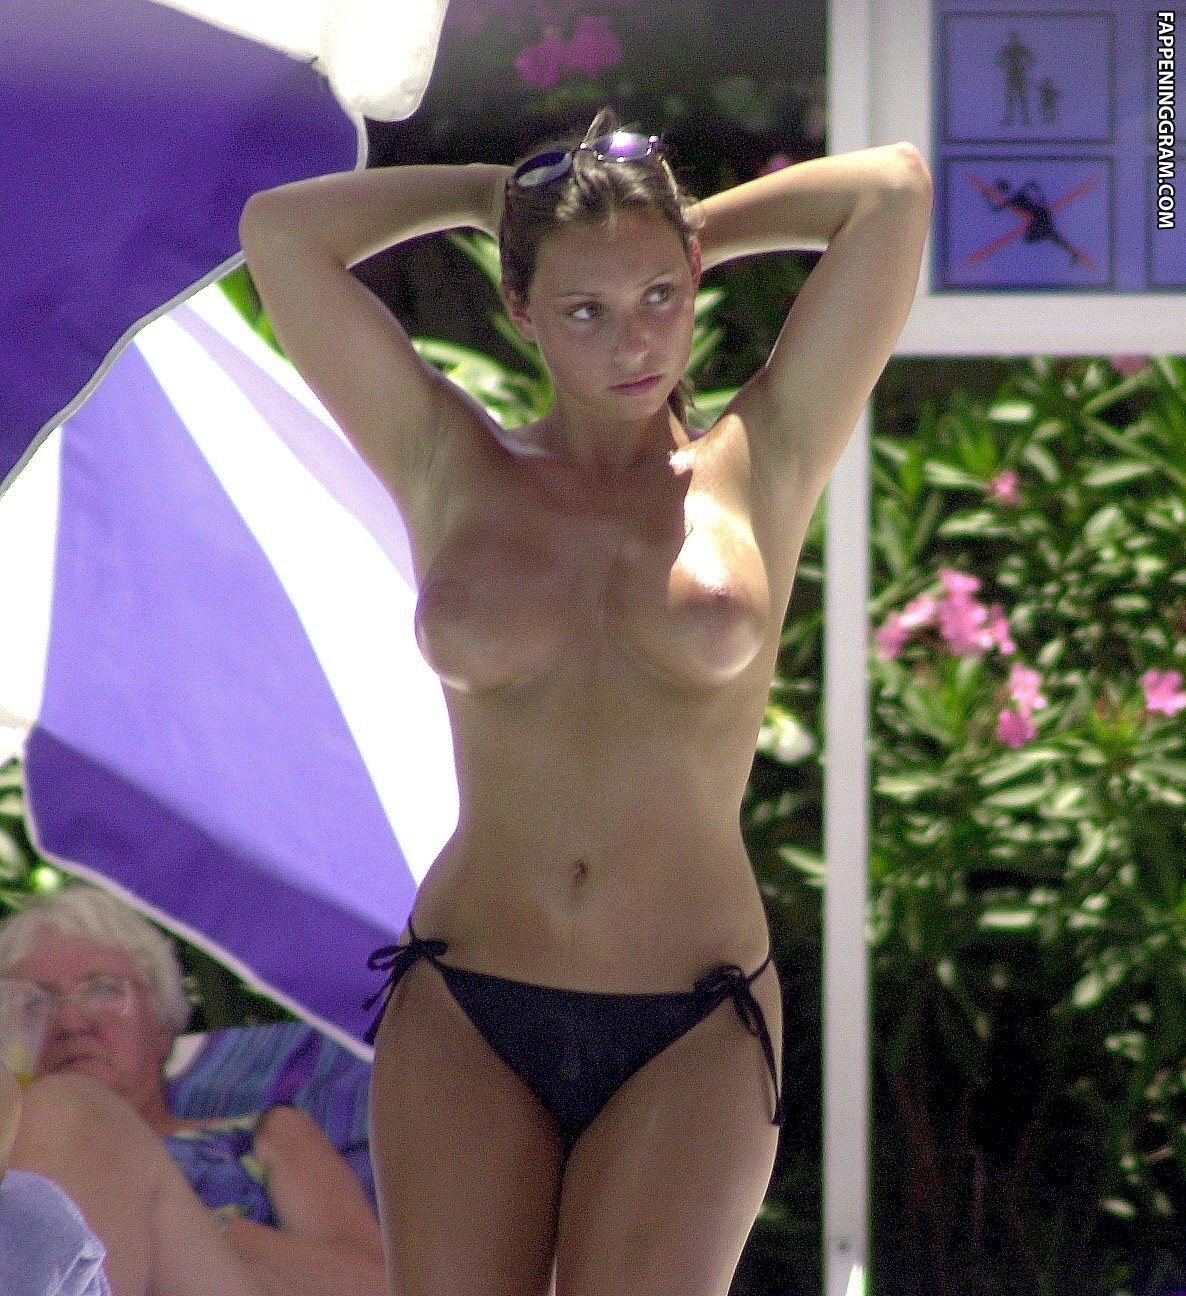 Sweet naked lucinda dickey awesome foreplay